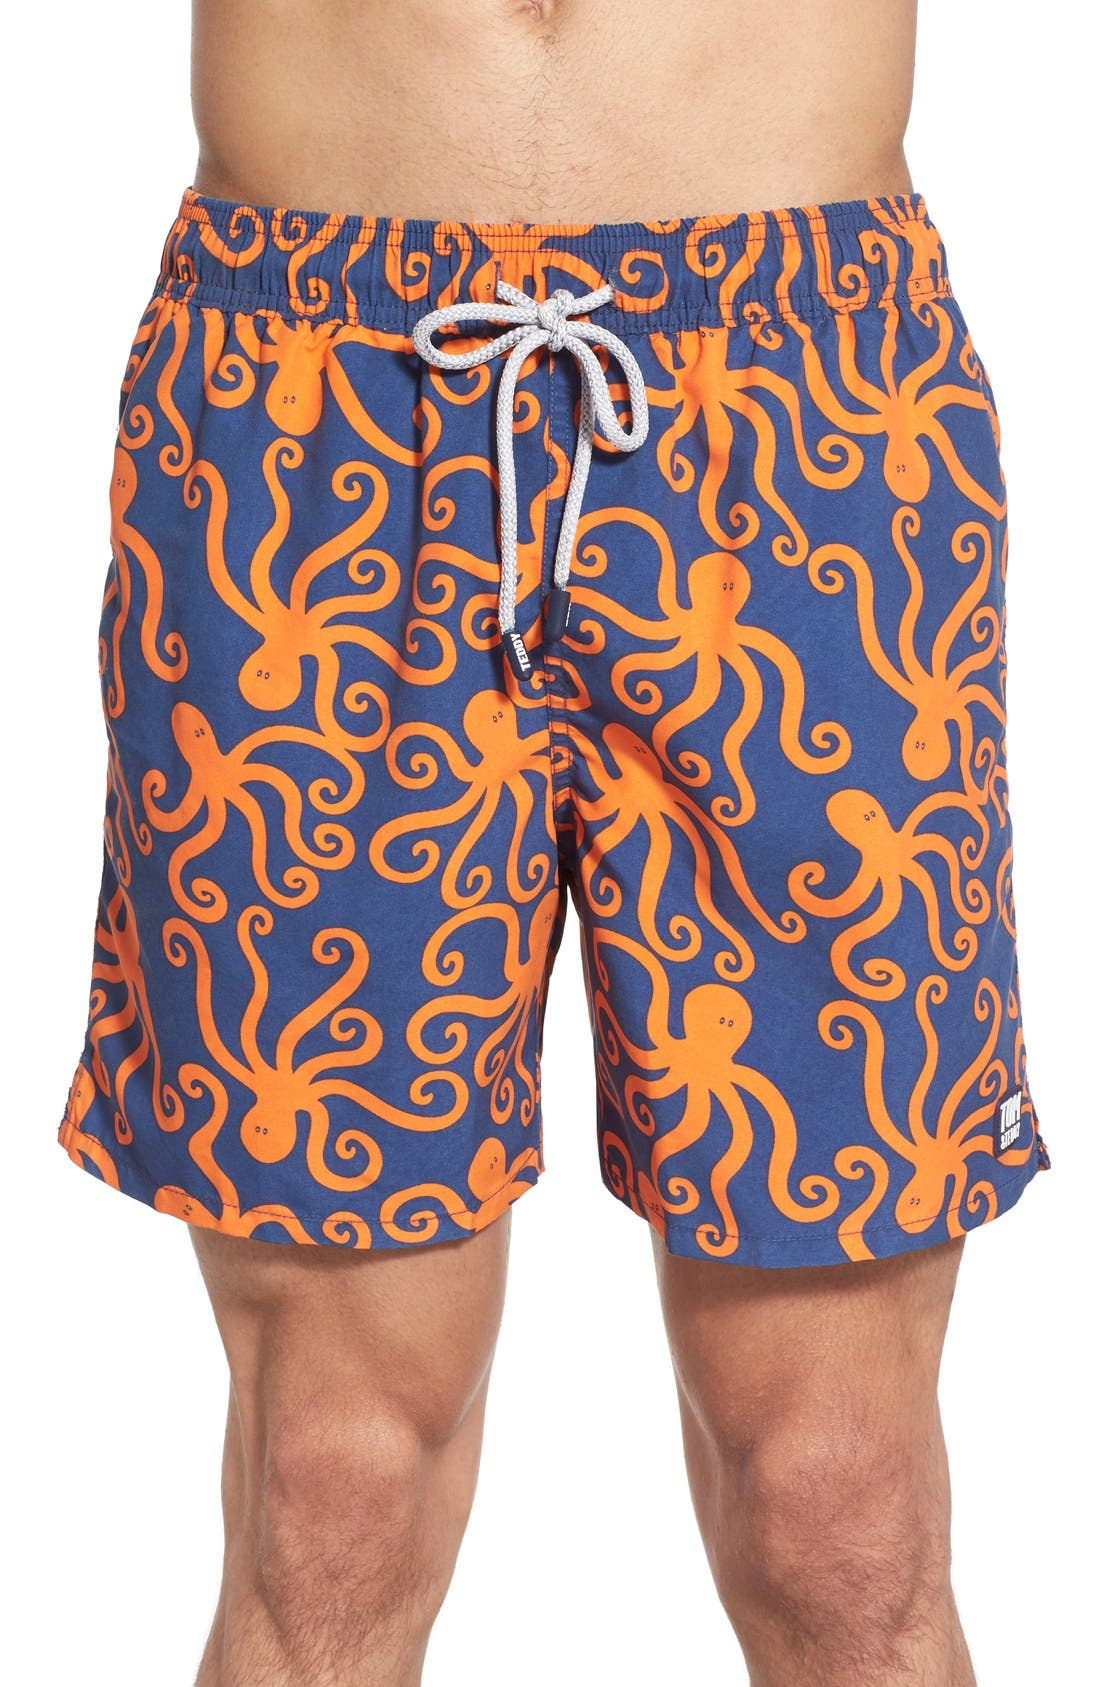 TOM & TEDDY 'Octopus Pattern' Swim Trunks